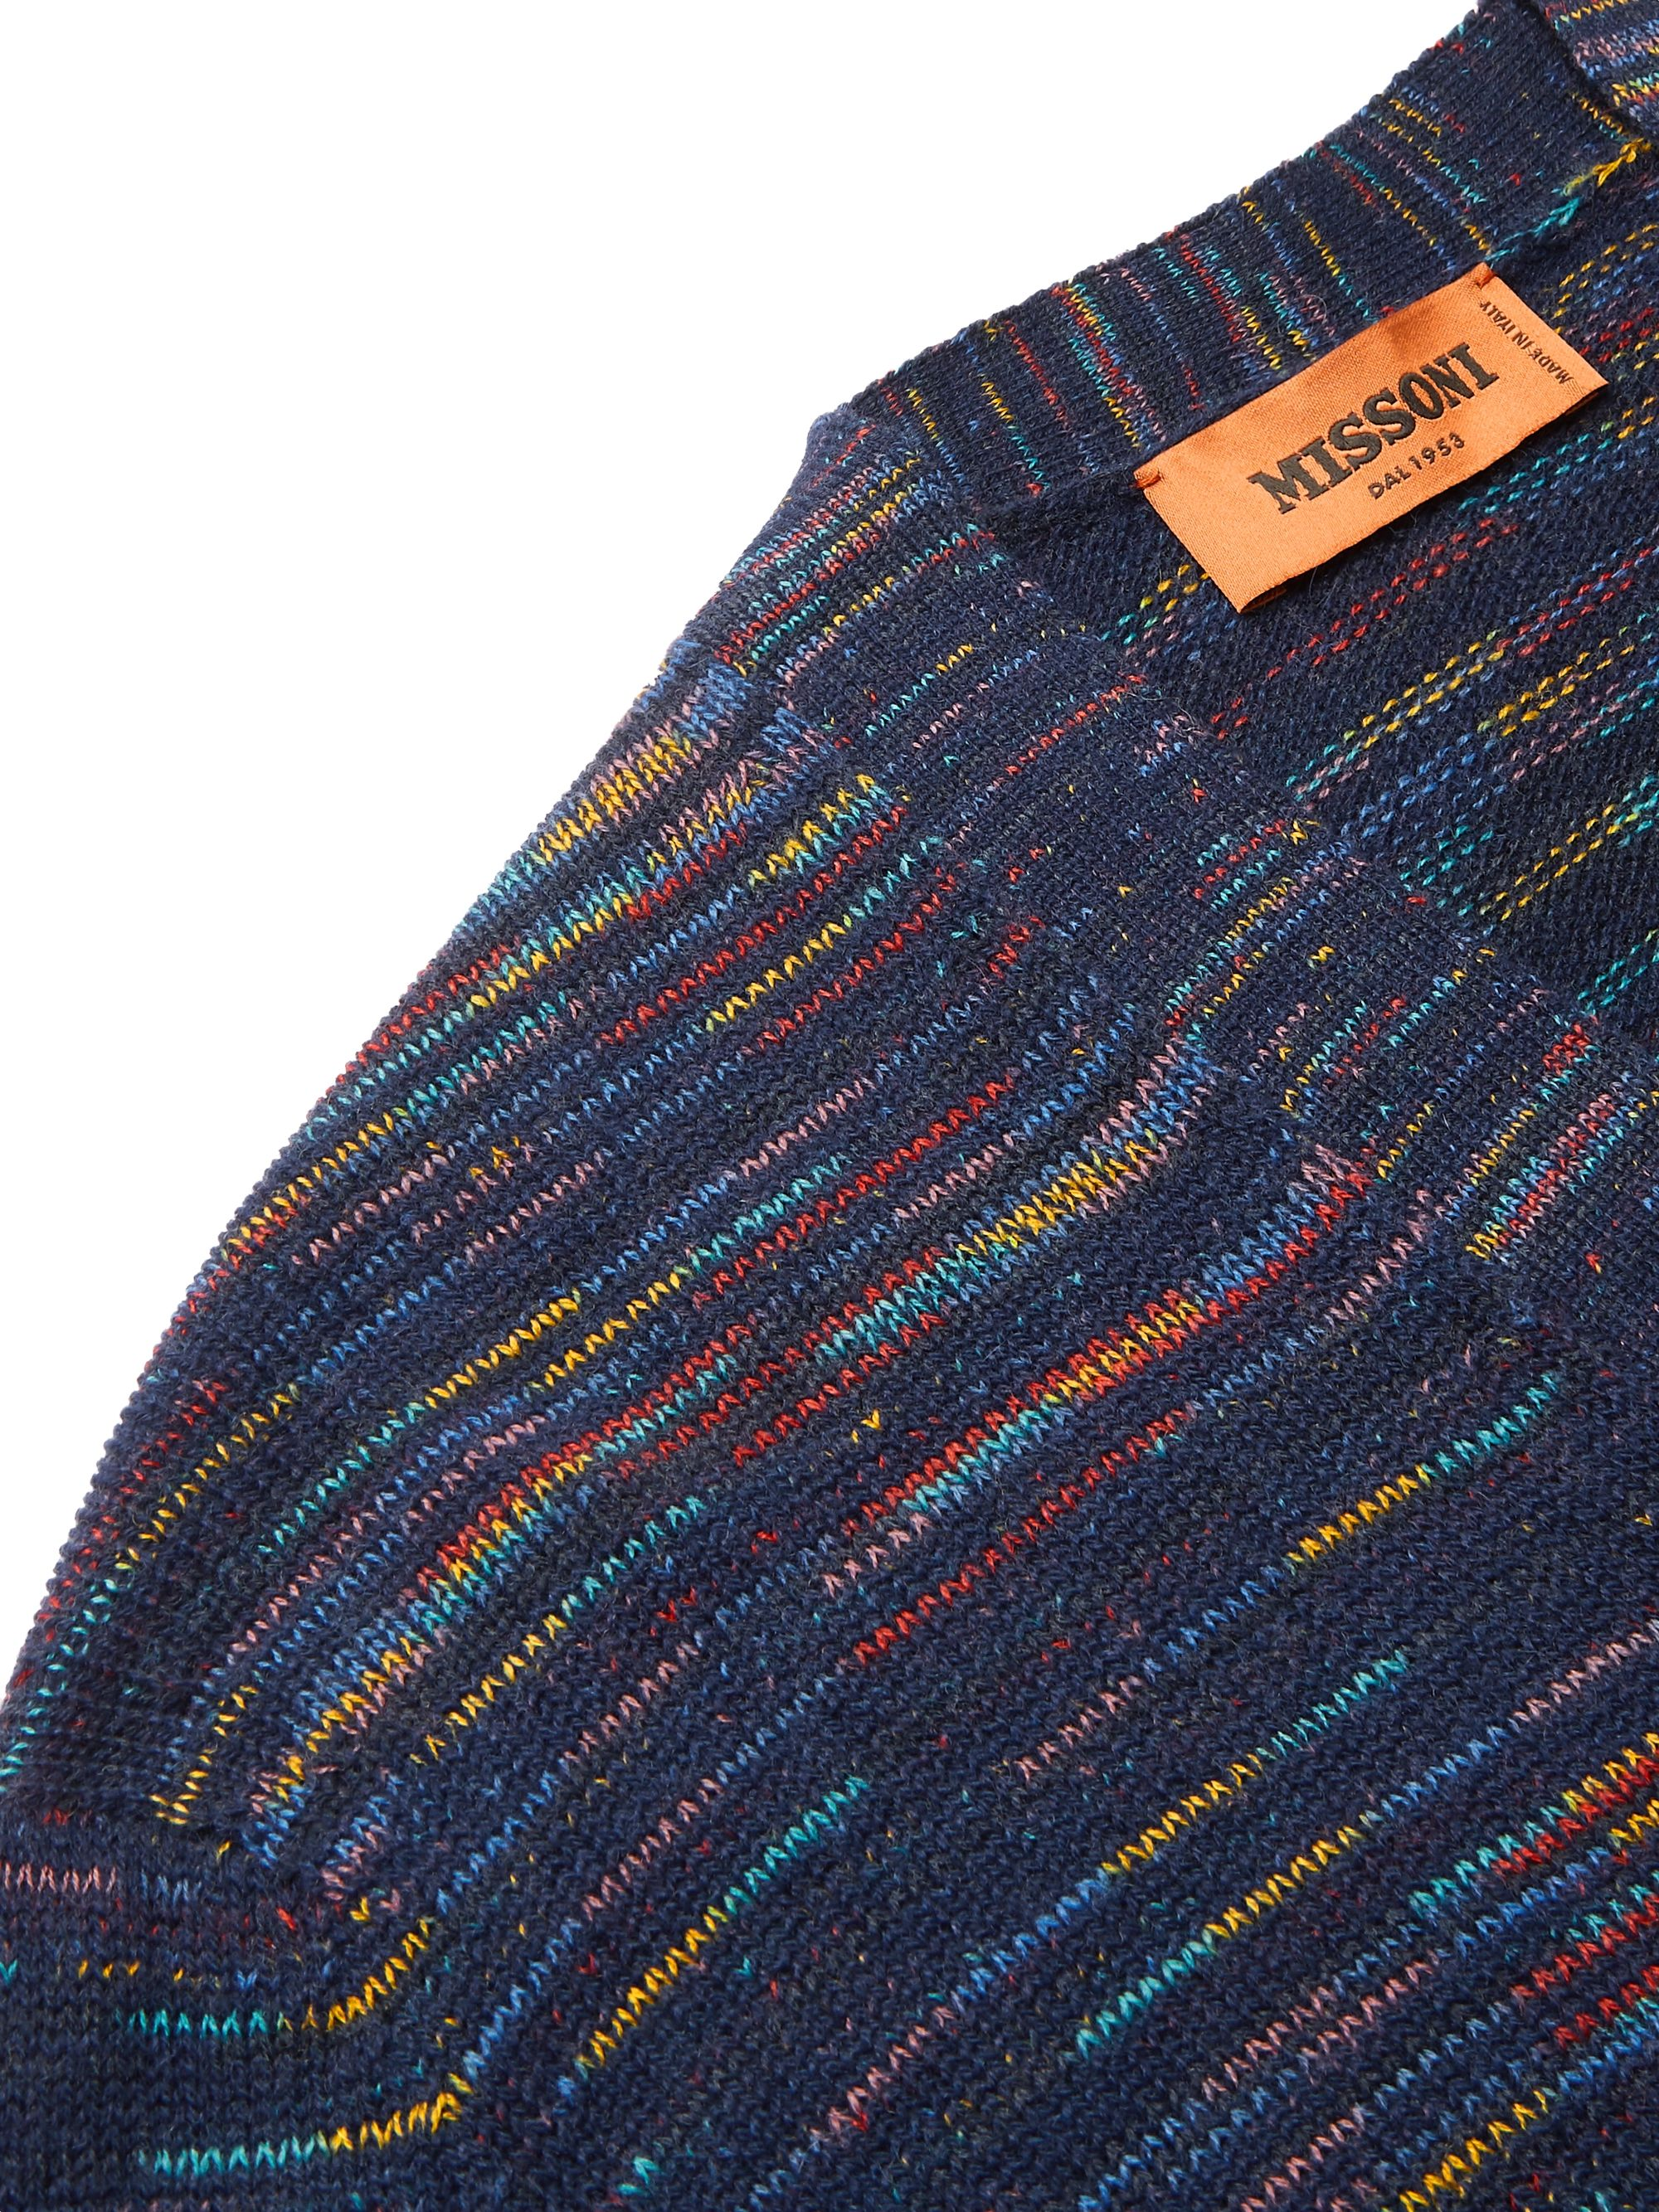 Missoni Space-Dyed Cashmere and Wool-Blend Cardigan